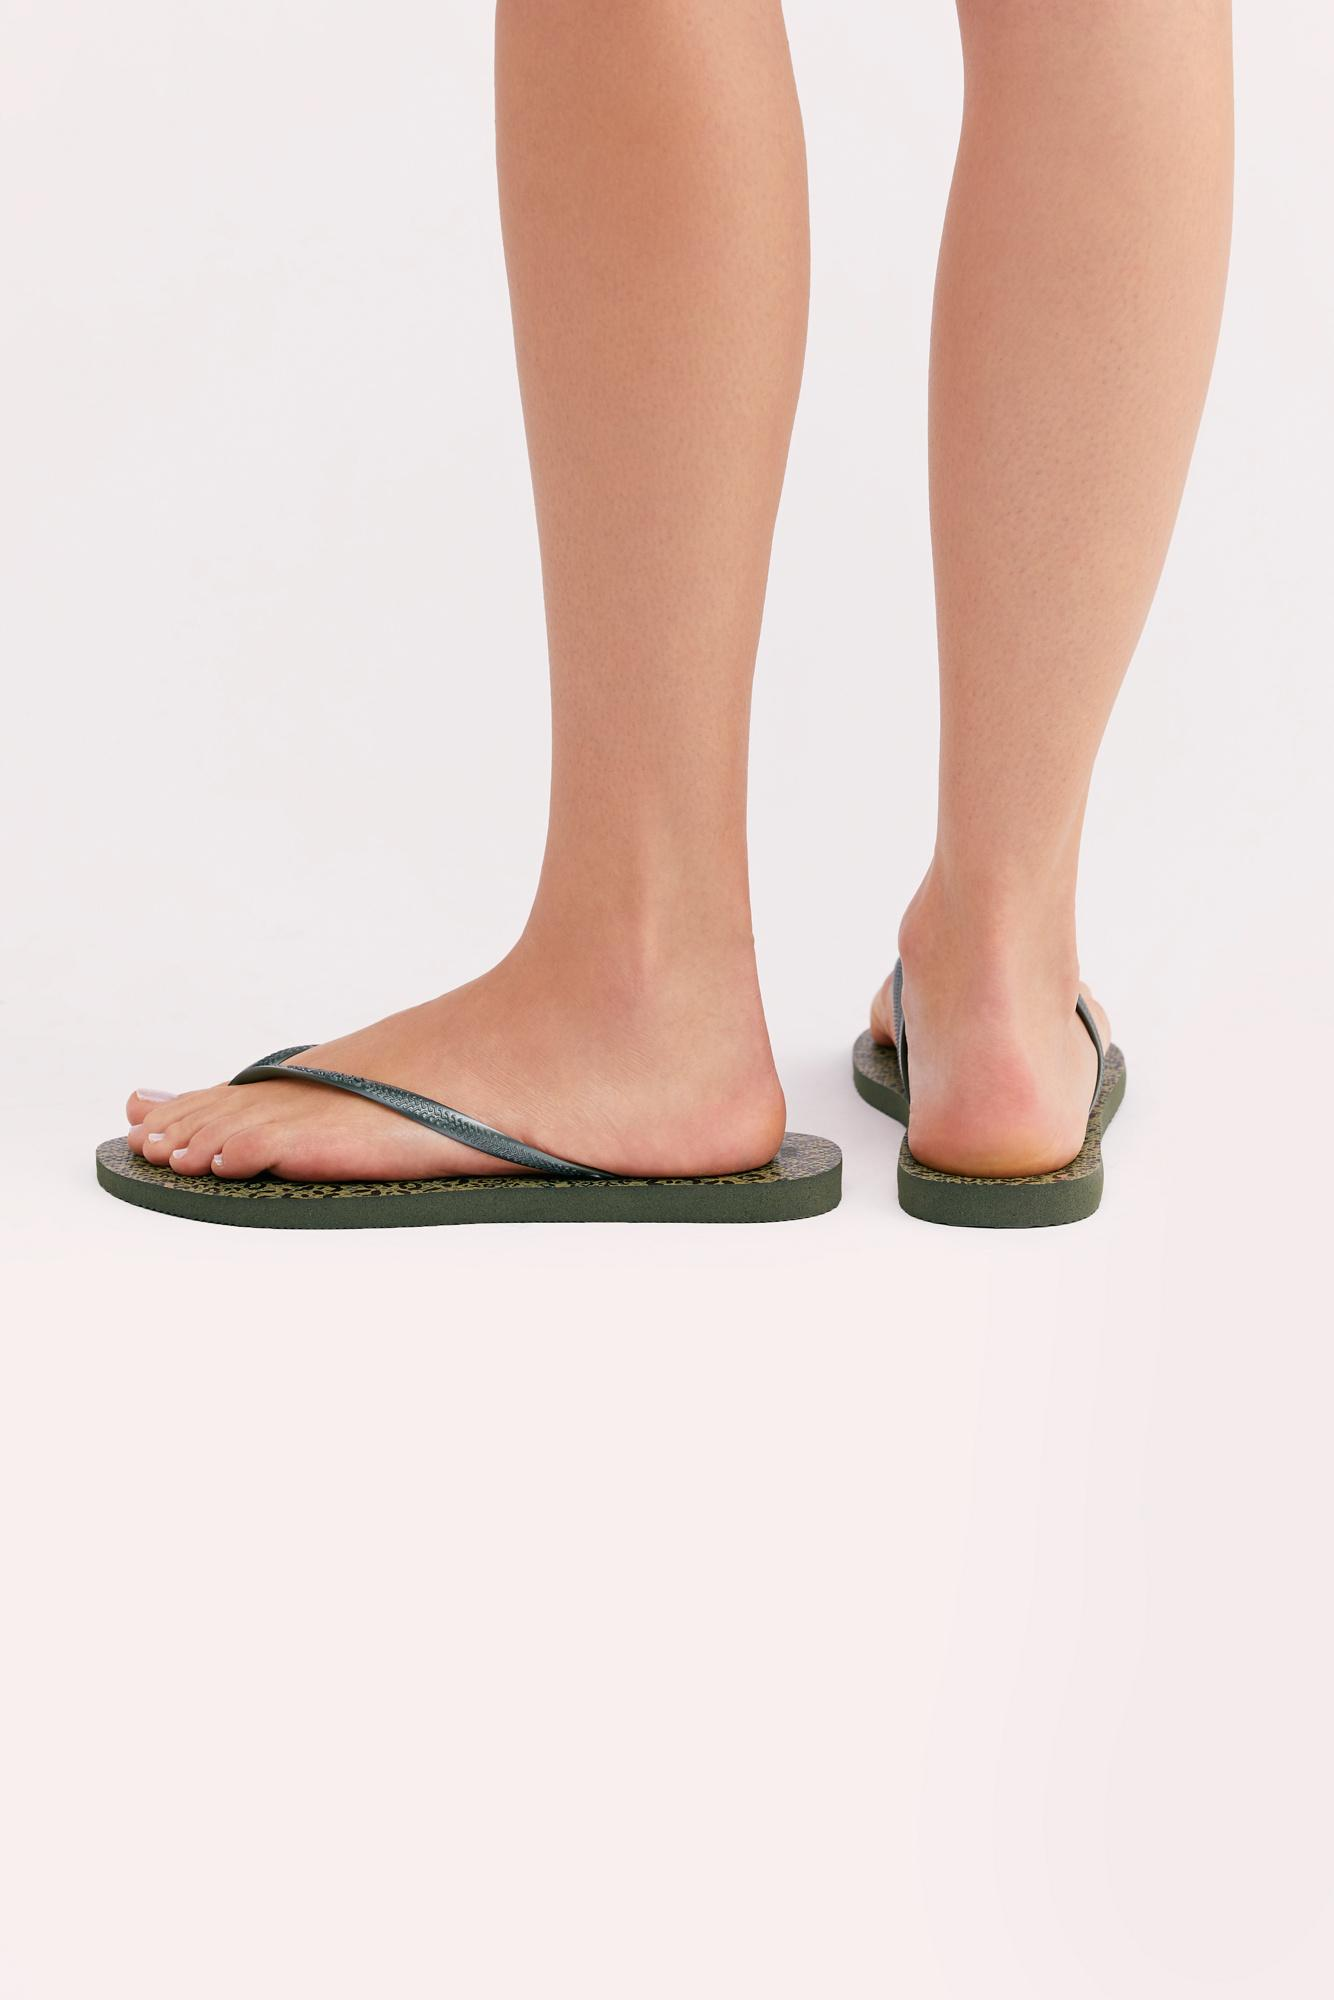 62652e578a63 Lyst - Free People Havaianas Slim Animal Thong Sandal in Green